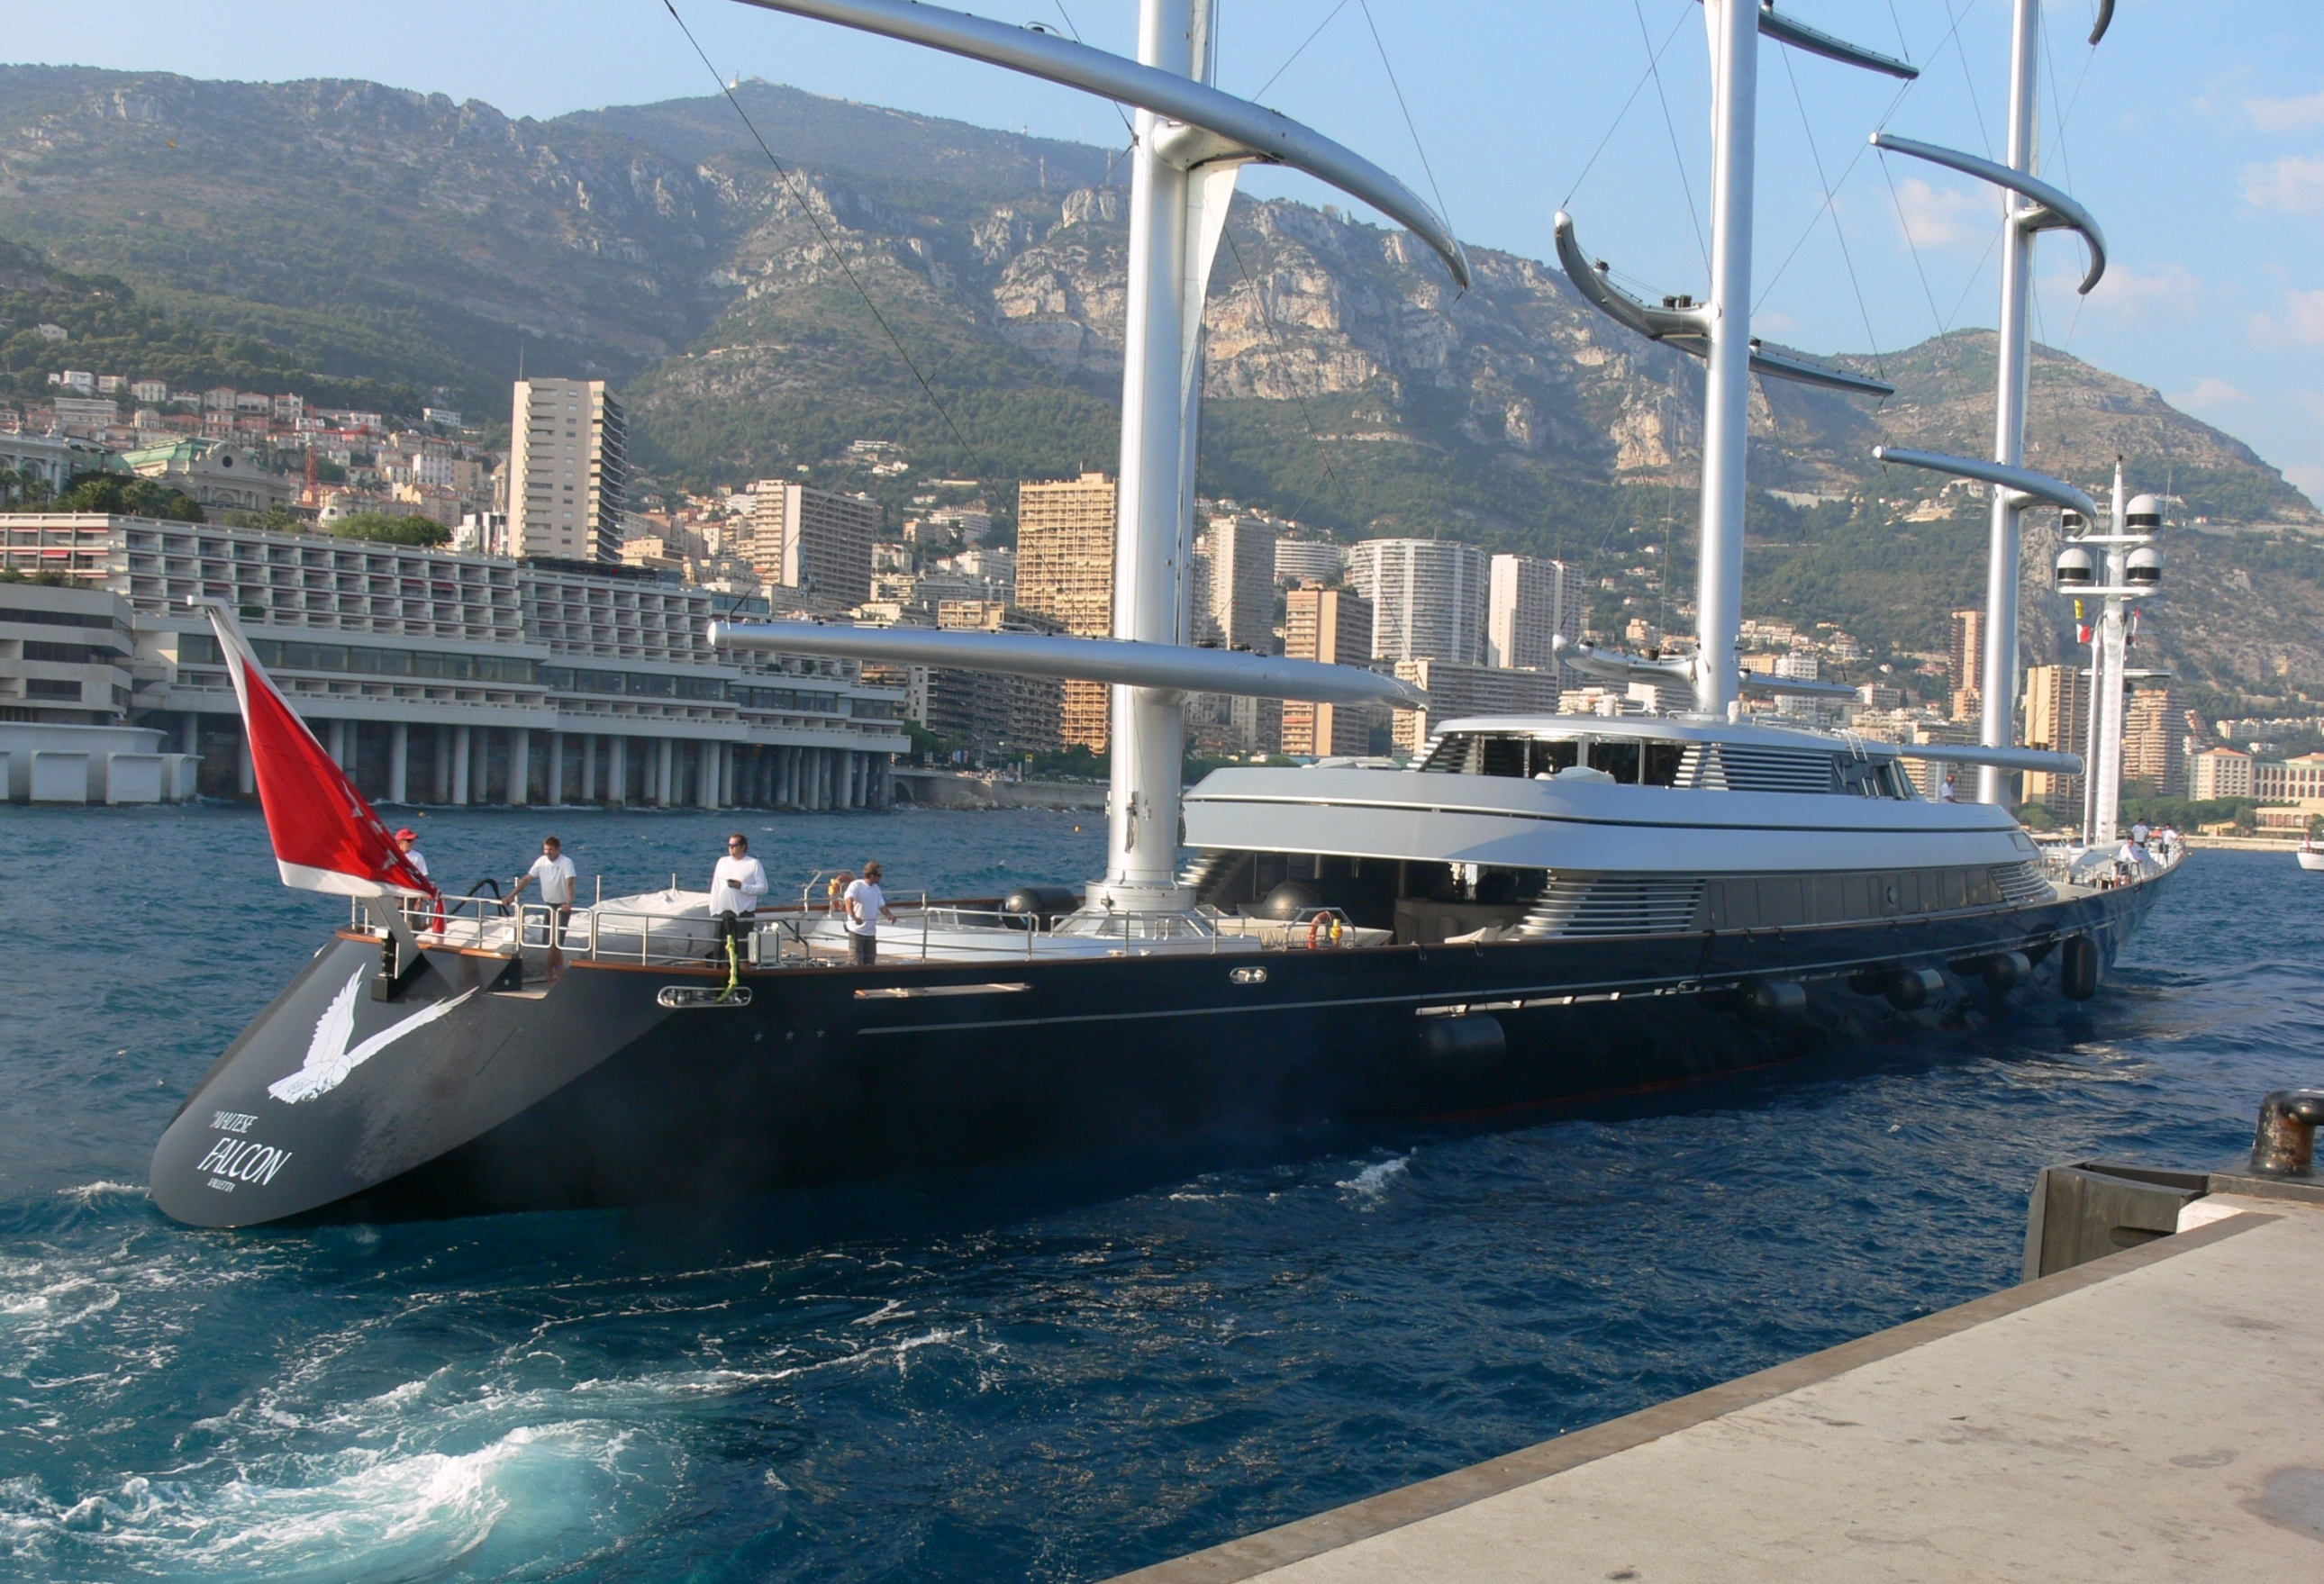 MALTESE FALCON Arriving Monaco For The Yacht Show